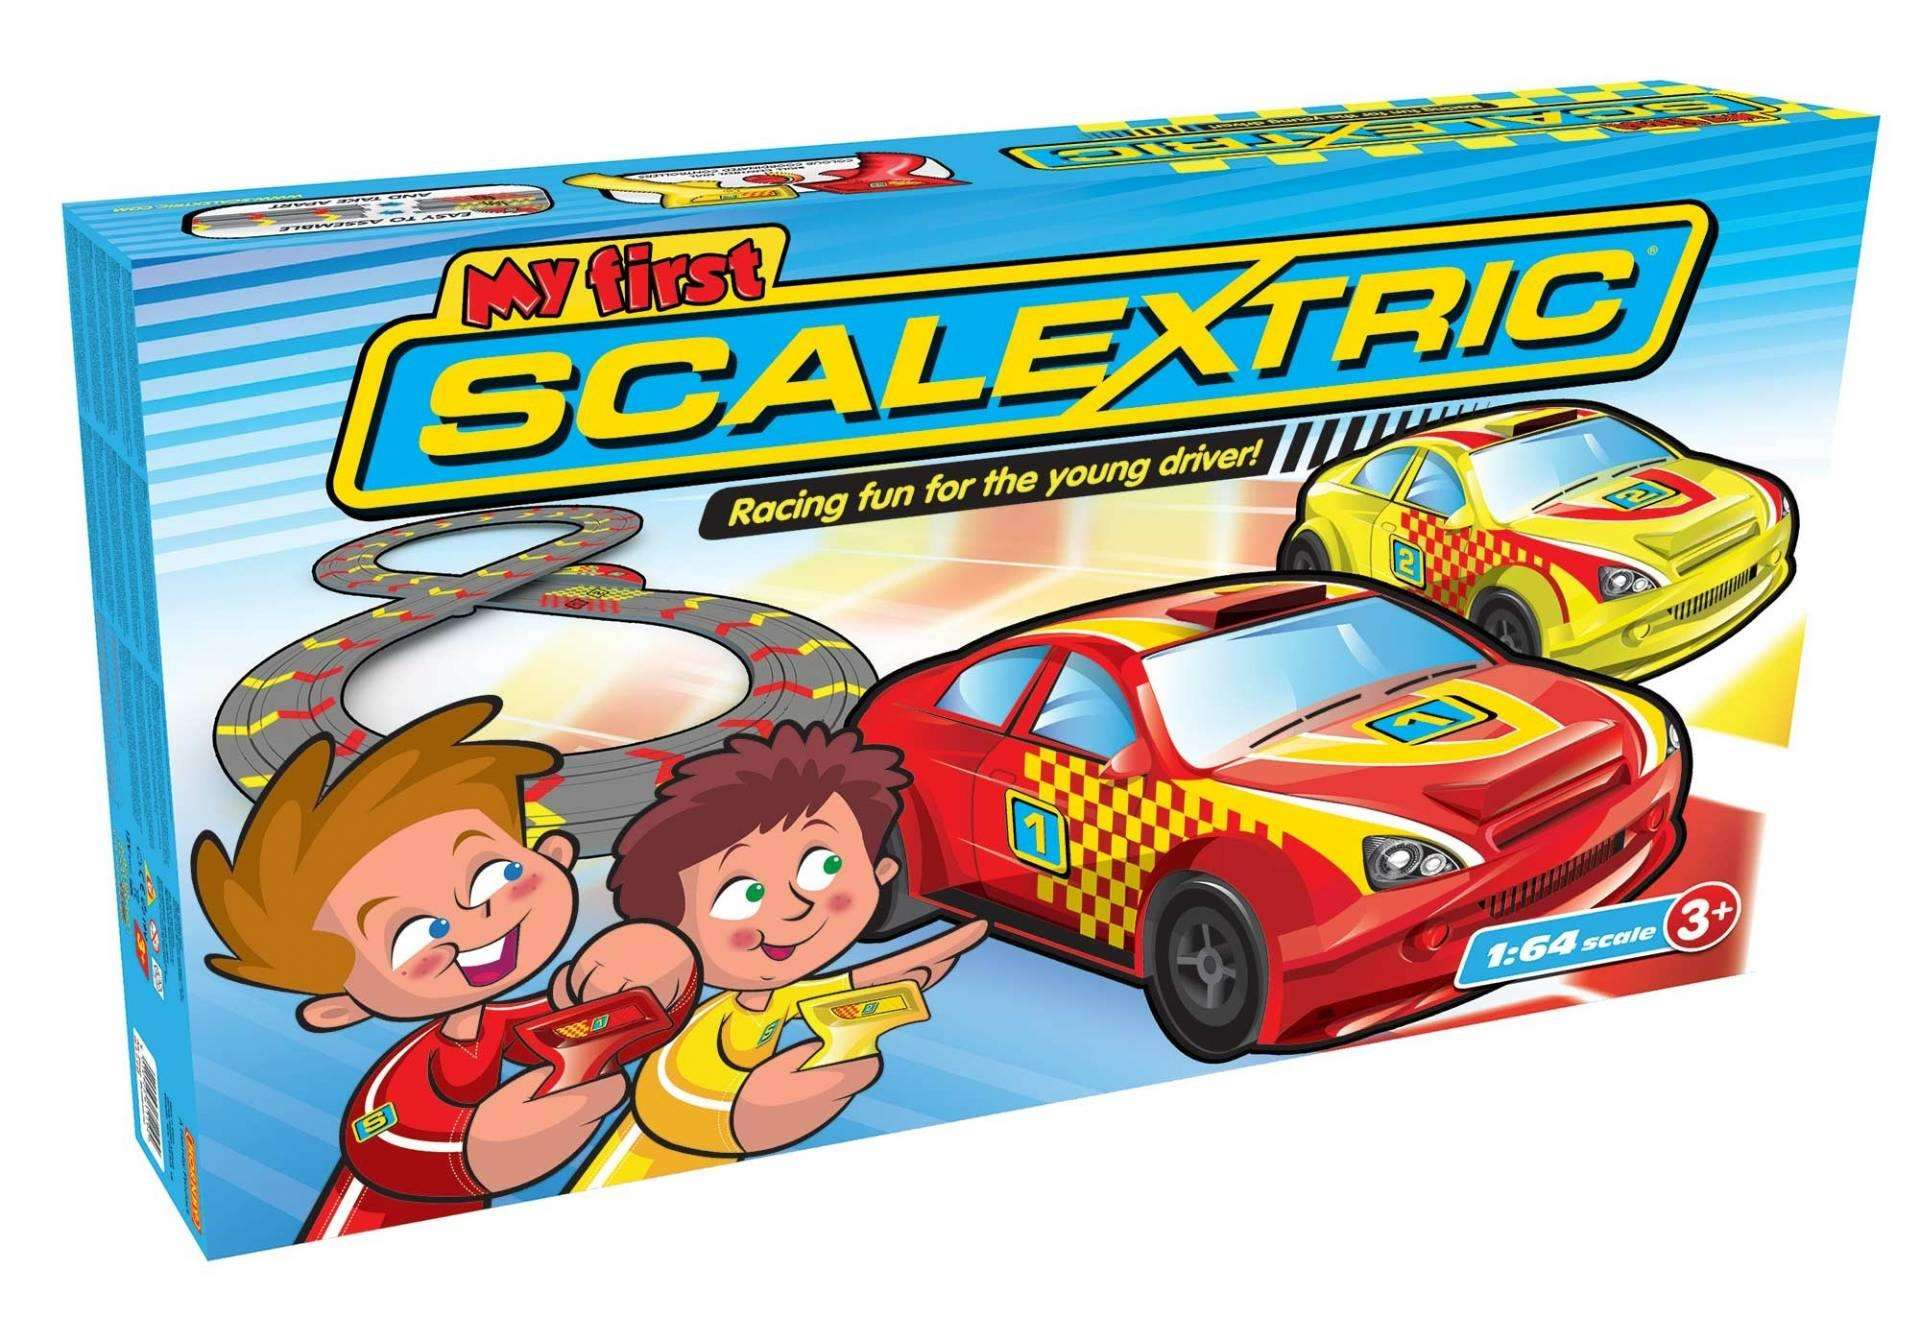 My First Scalectrix Review, g1119 my first scalextric 1%, product-review%